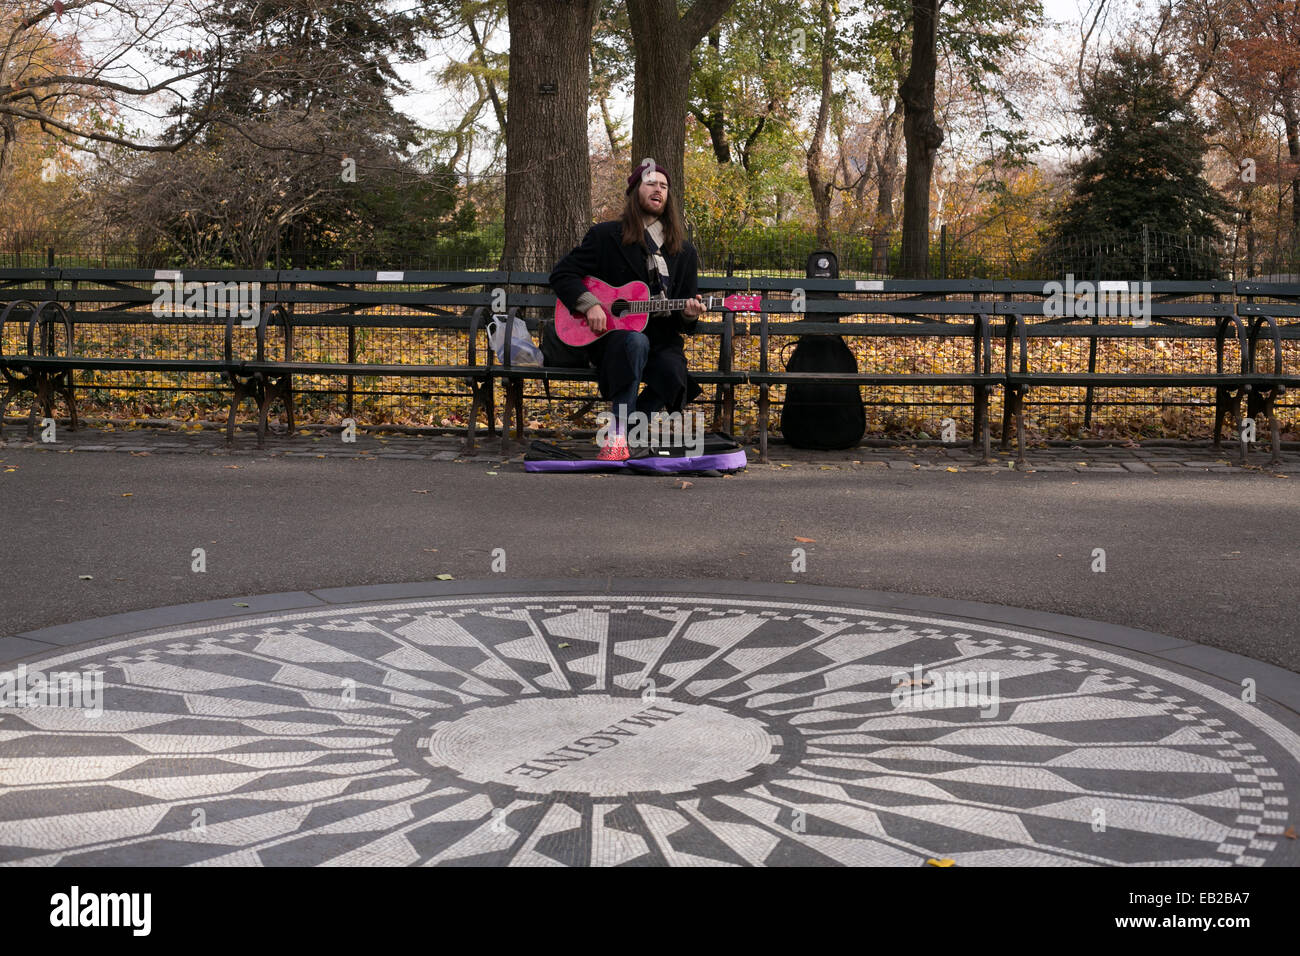 The Imagine mosaic in the Strawberry Fields section of Central Park, New York City. - Stock Image